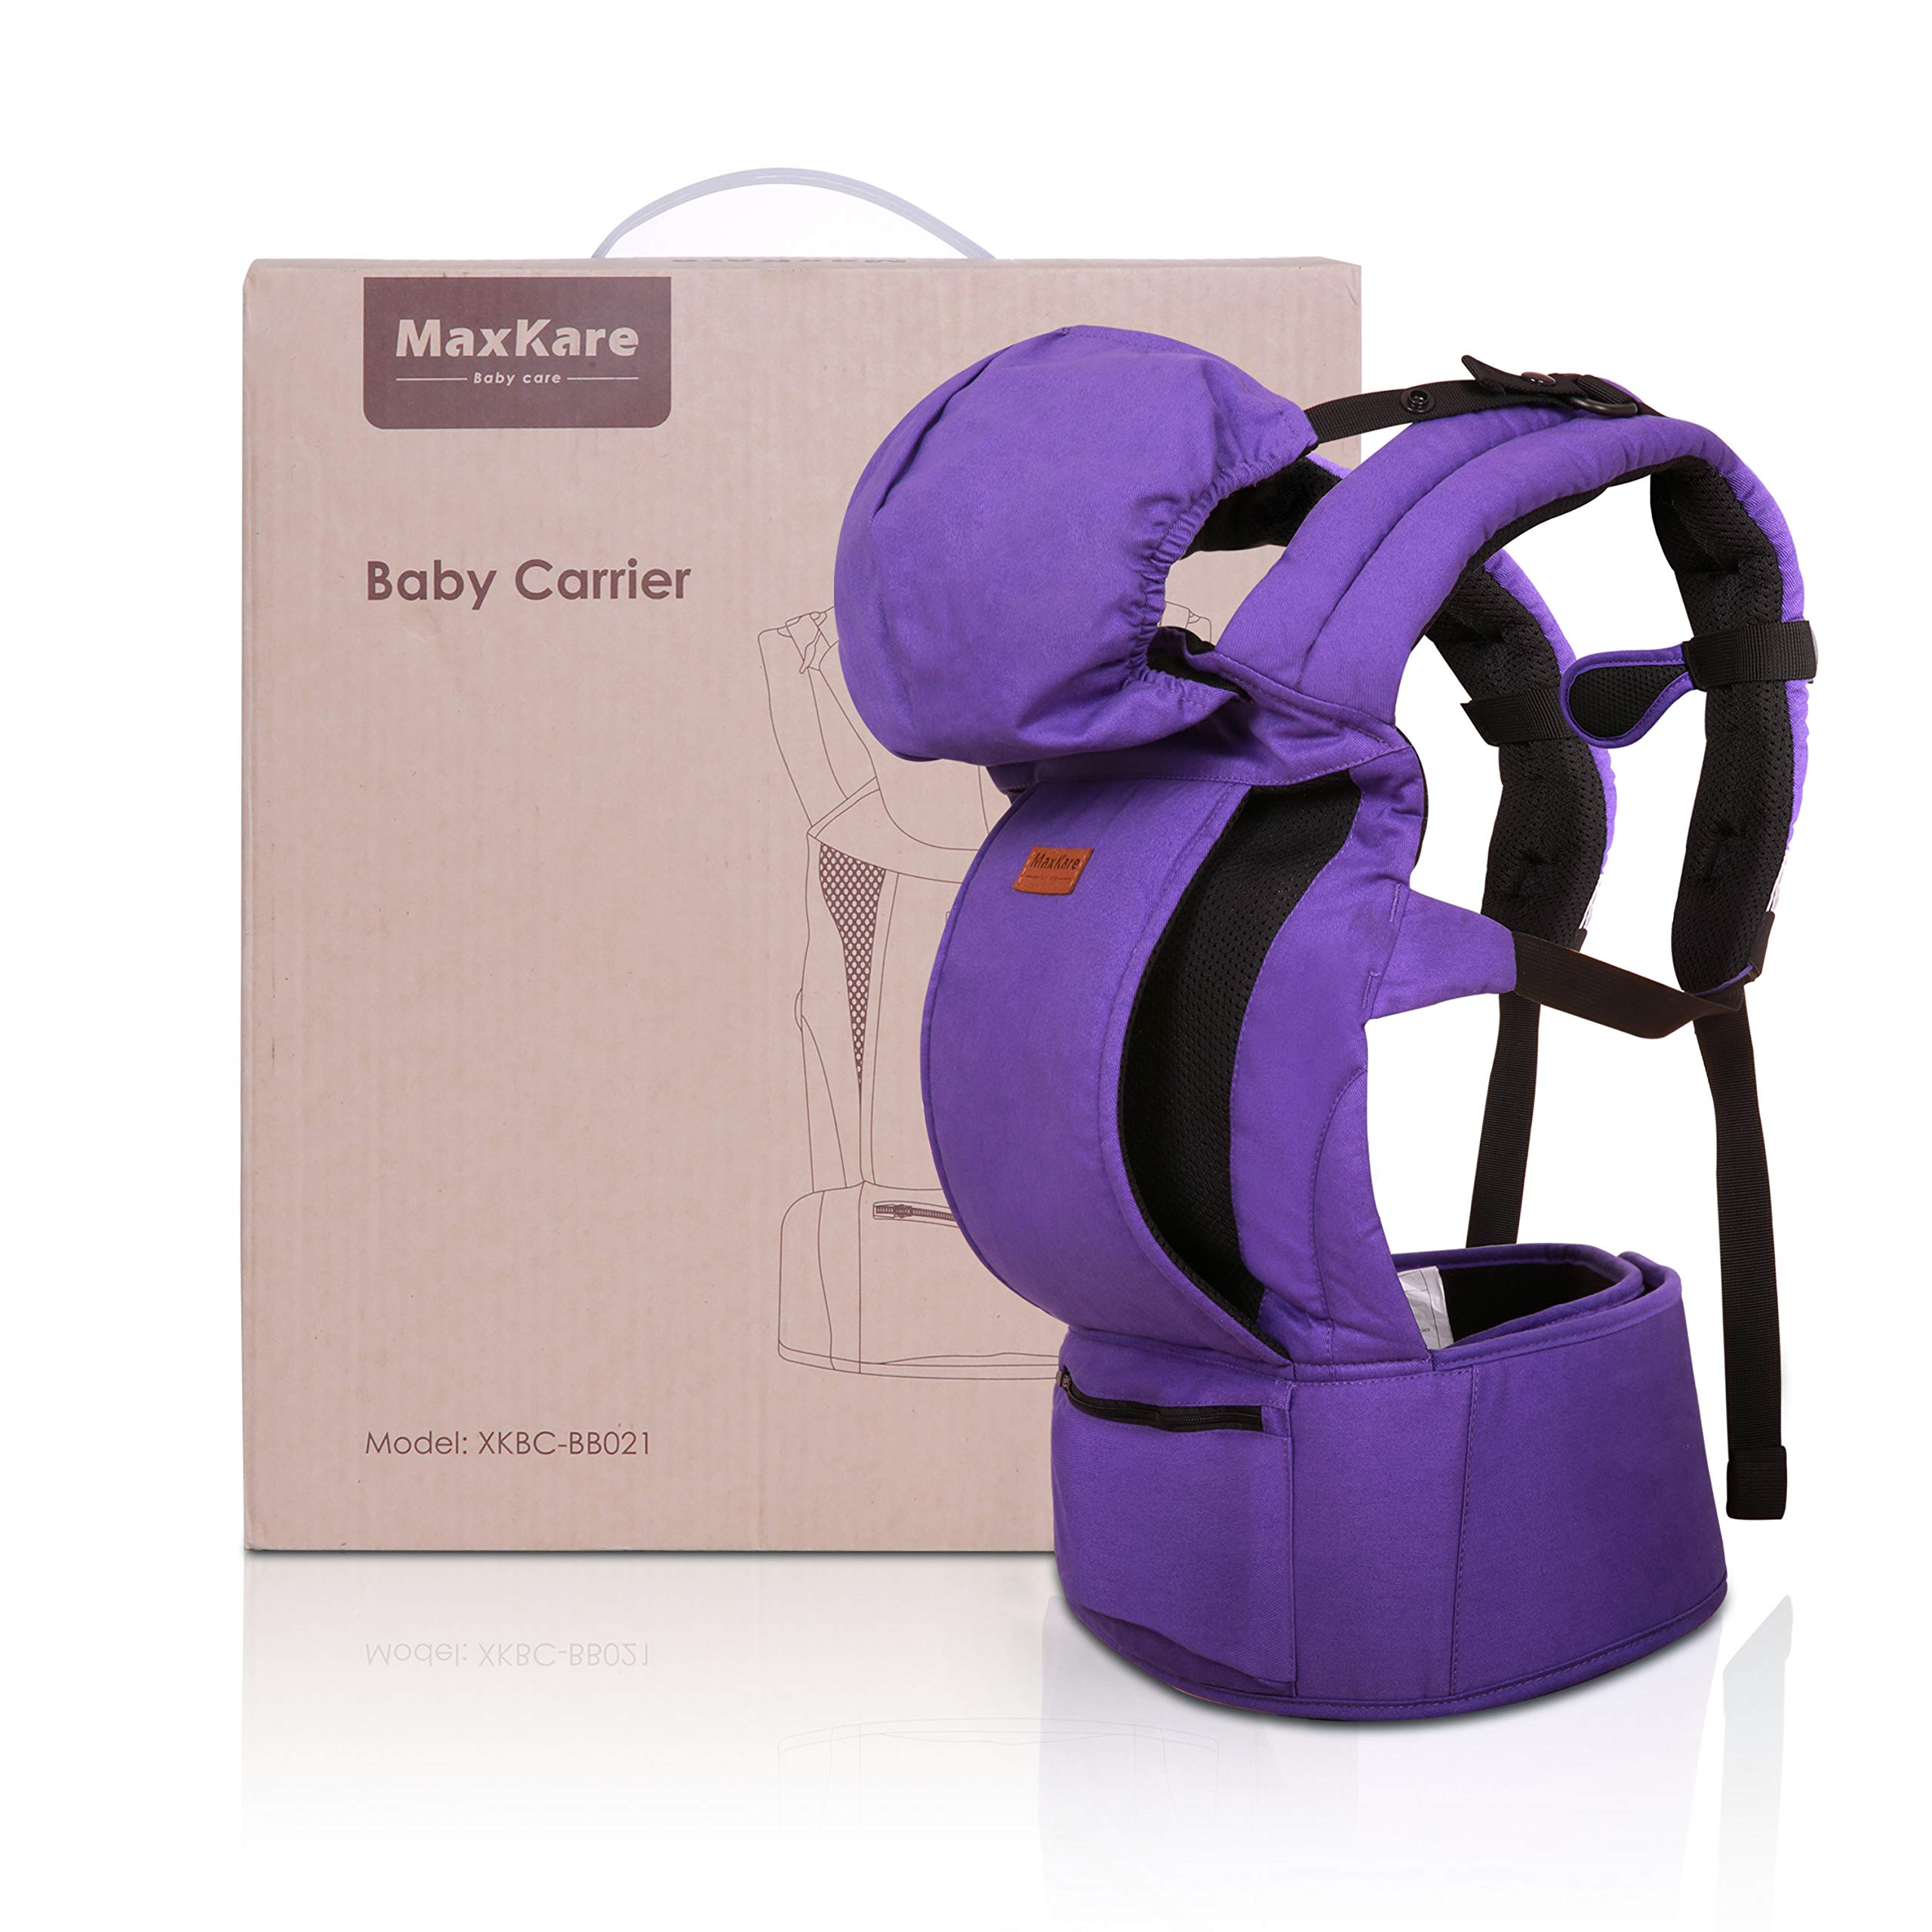 Baby Carrier Infant Toddler Baby Backpack 100% Cotton Ergonomic with Breathable Mesh Pockets and Hood